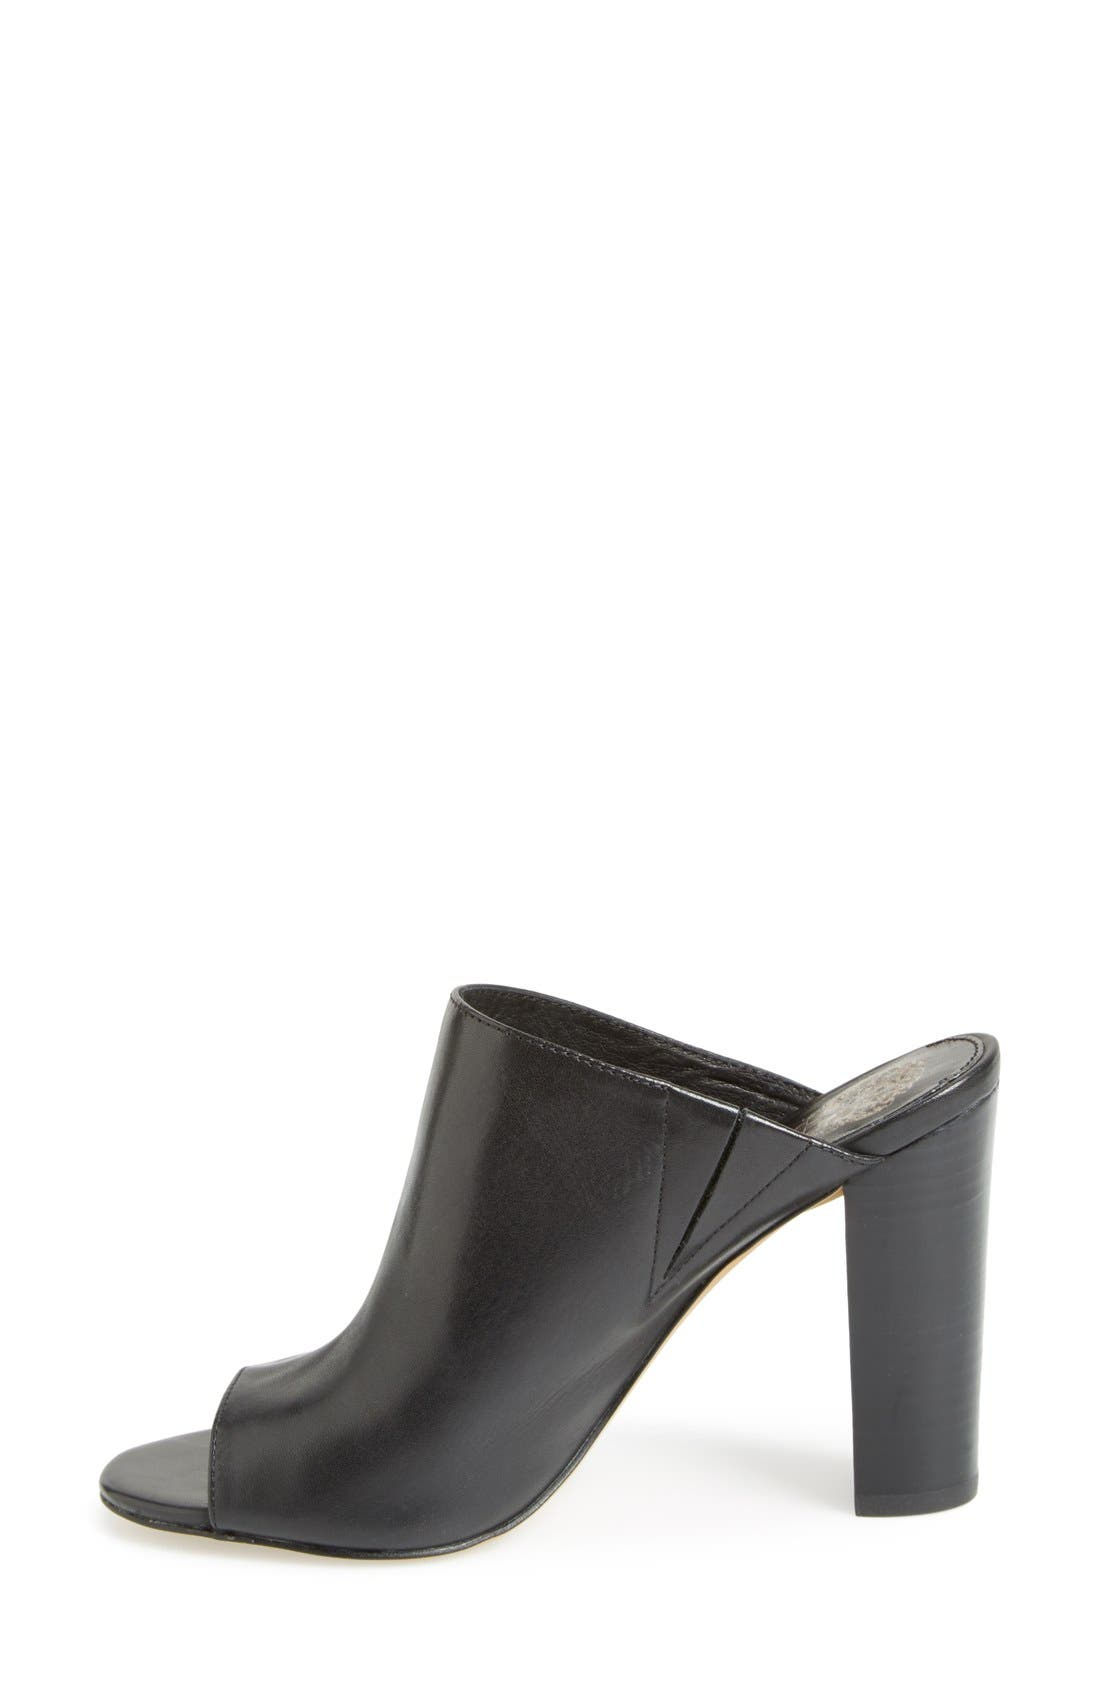 'Vestata' Leather Peep Toe Mule,                             Alternate thumbnail 3, color,                             001